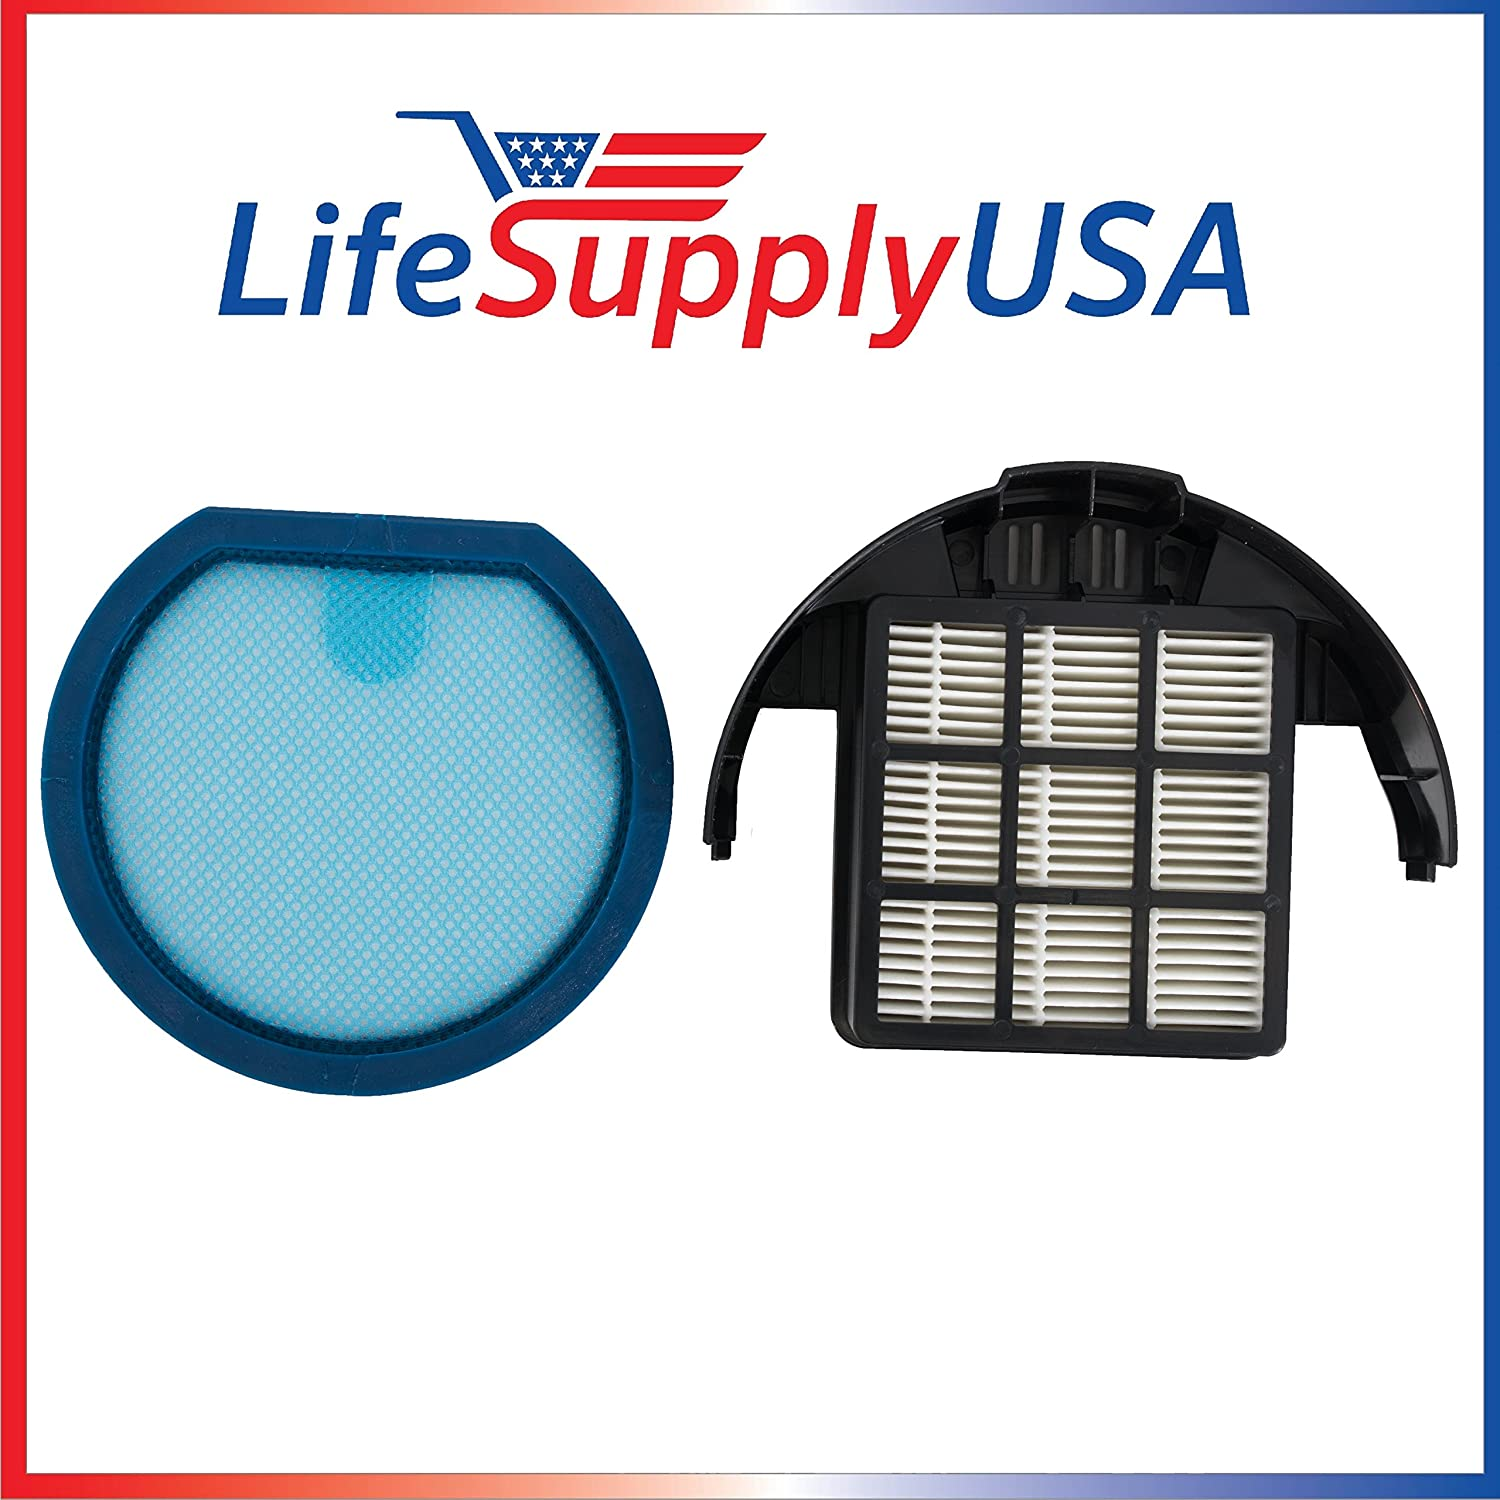 LifeSupplyUSA Replacement Filter Kit Compatible with Hoover T-Series WindTunnel Bagless Upright fits 303173001 and 303172002